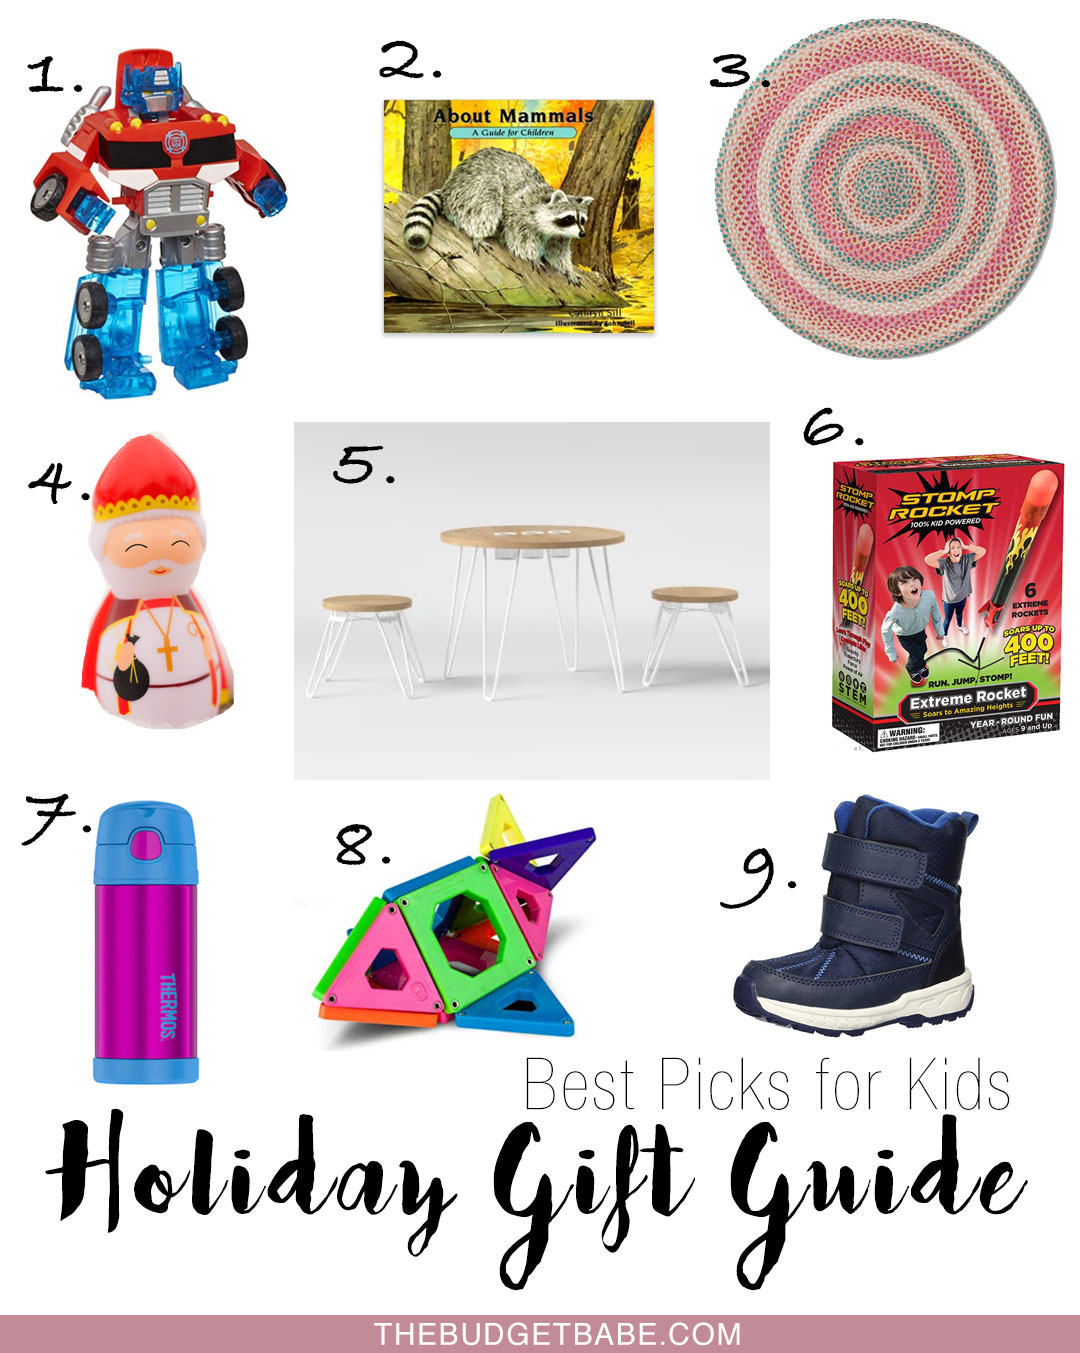 Holiday gift ideas from a mom of three!